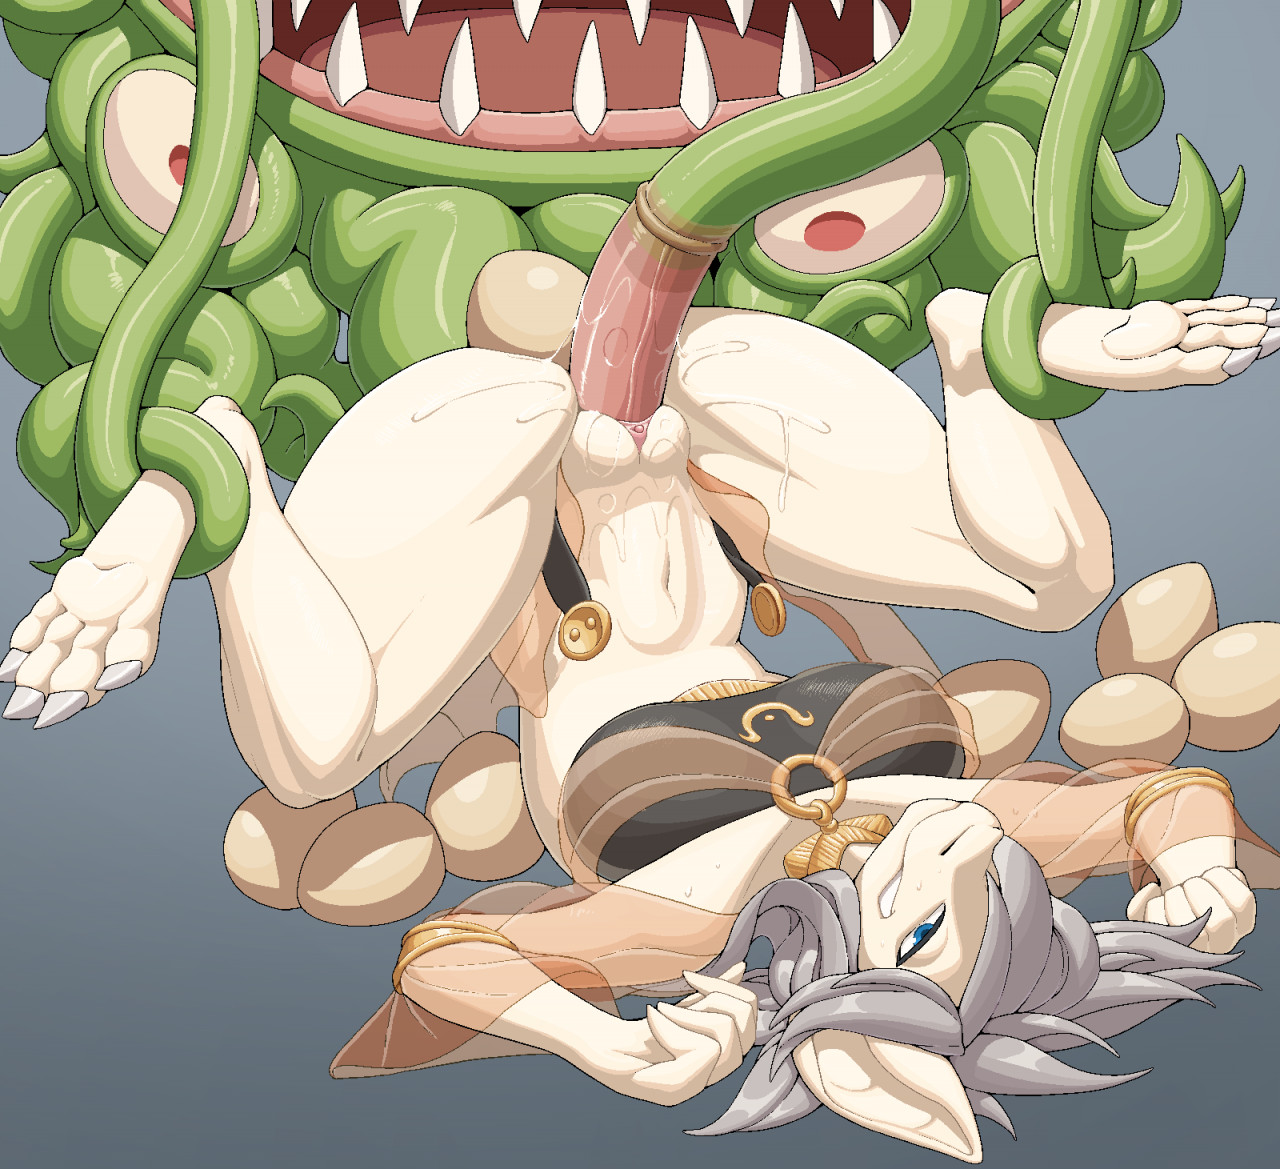 pata 2020 aliasing ambiguous gender ambiguous penetrating ambiguous penetrating female anthro blue eyes bodily fluids bottomless breasts claws clothed clothing duo female female/ambiguous female penetrated genital fluids green body green skin grey background grey hair hair legs bound monster penetration piledriver position pussy juice scalie sex sharp teeth simple background solo focus stomach bulge sweat tan body teeth tentacle tentacle monster tentacle sex topwear translucent translucent clothing vaginal penetration